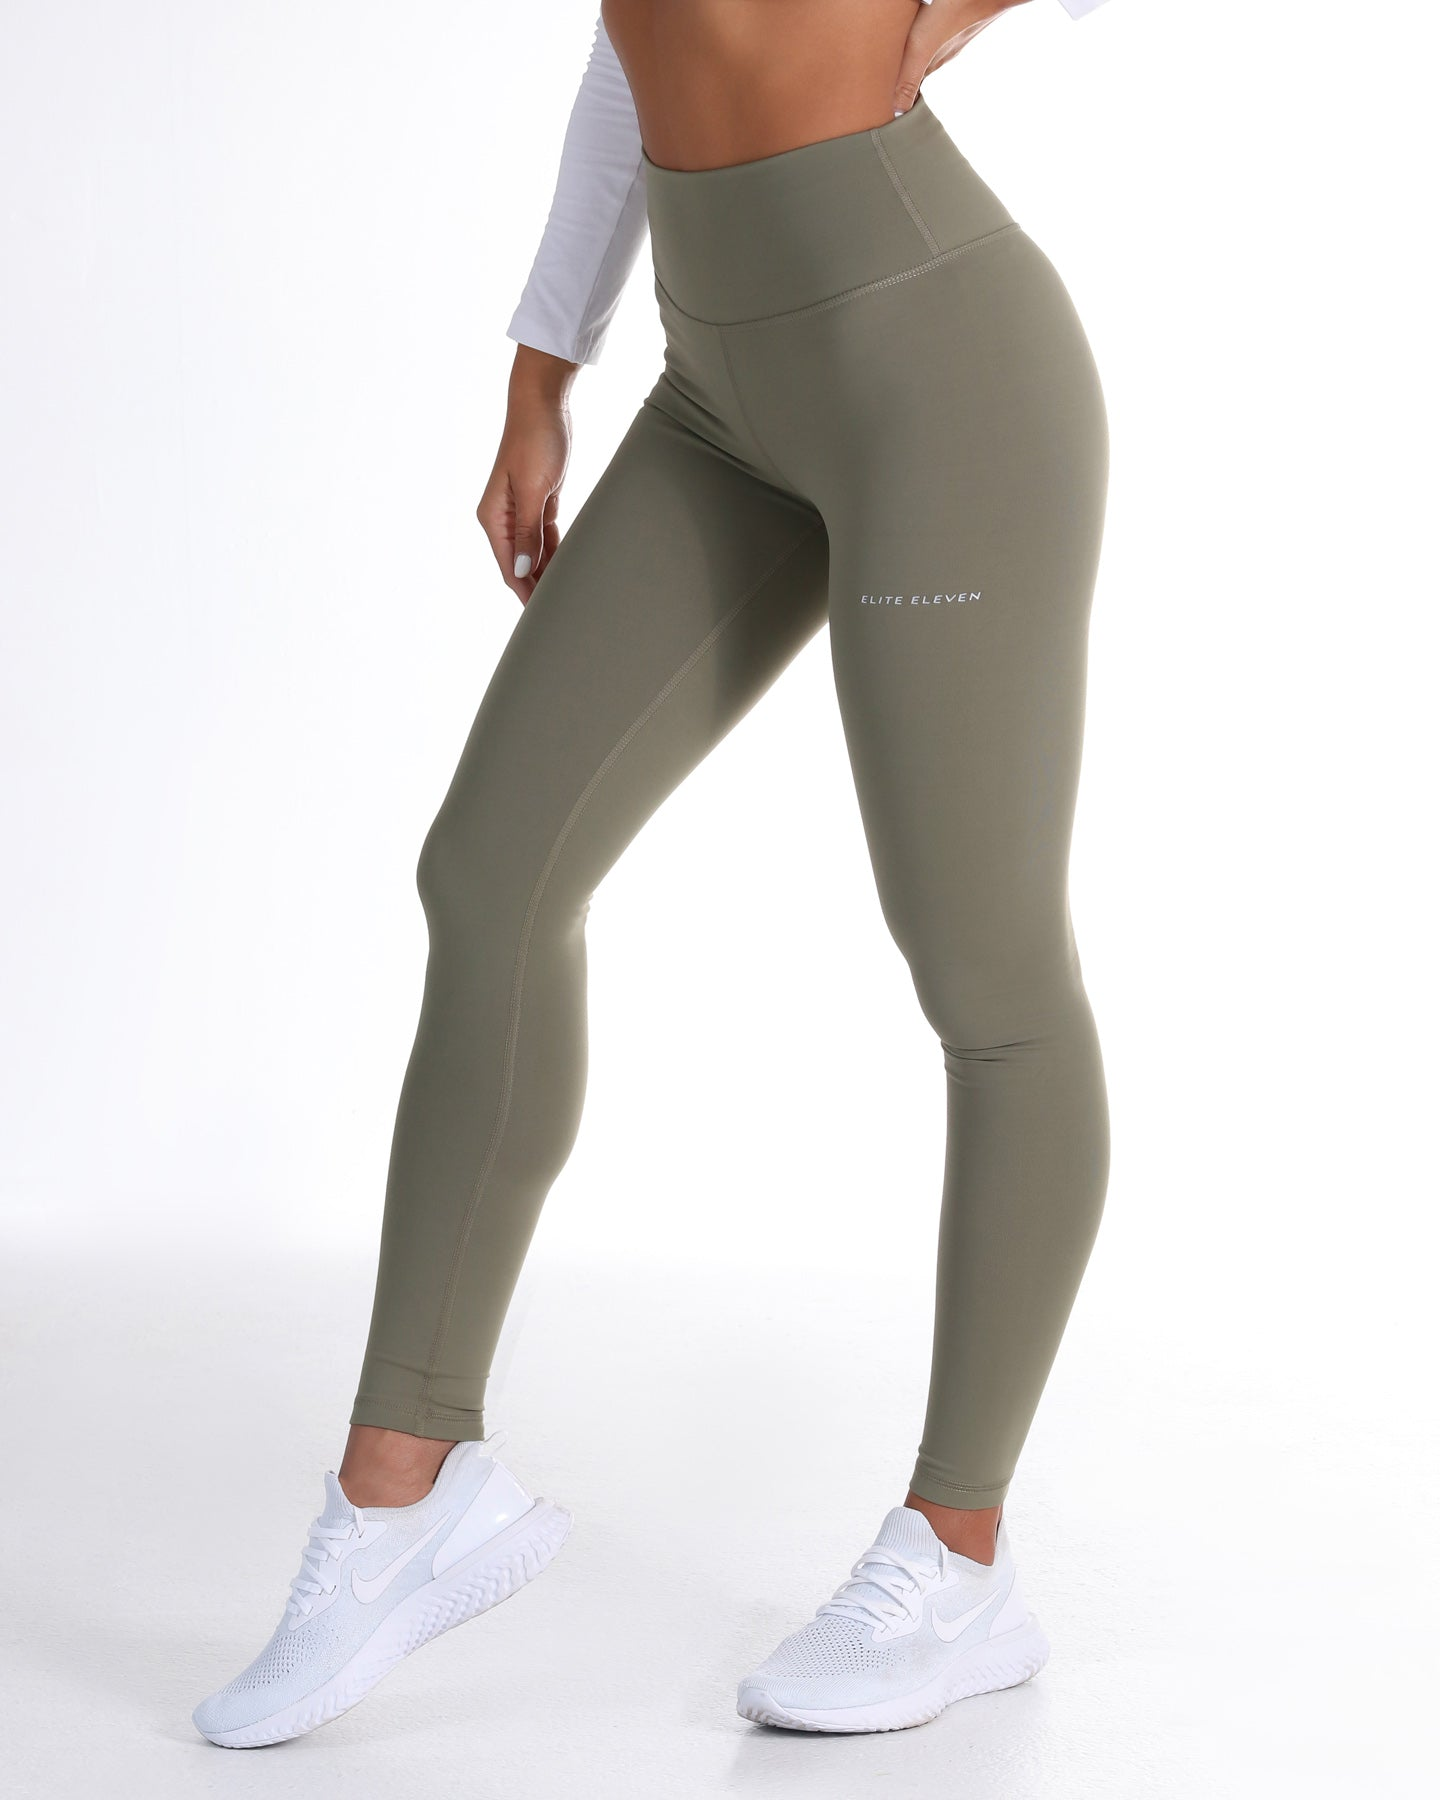 85687f29a41b2d EE Touch Tights - Dusty Khaki - Elite Eleven